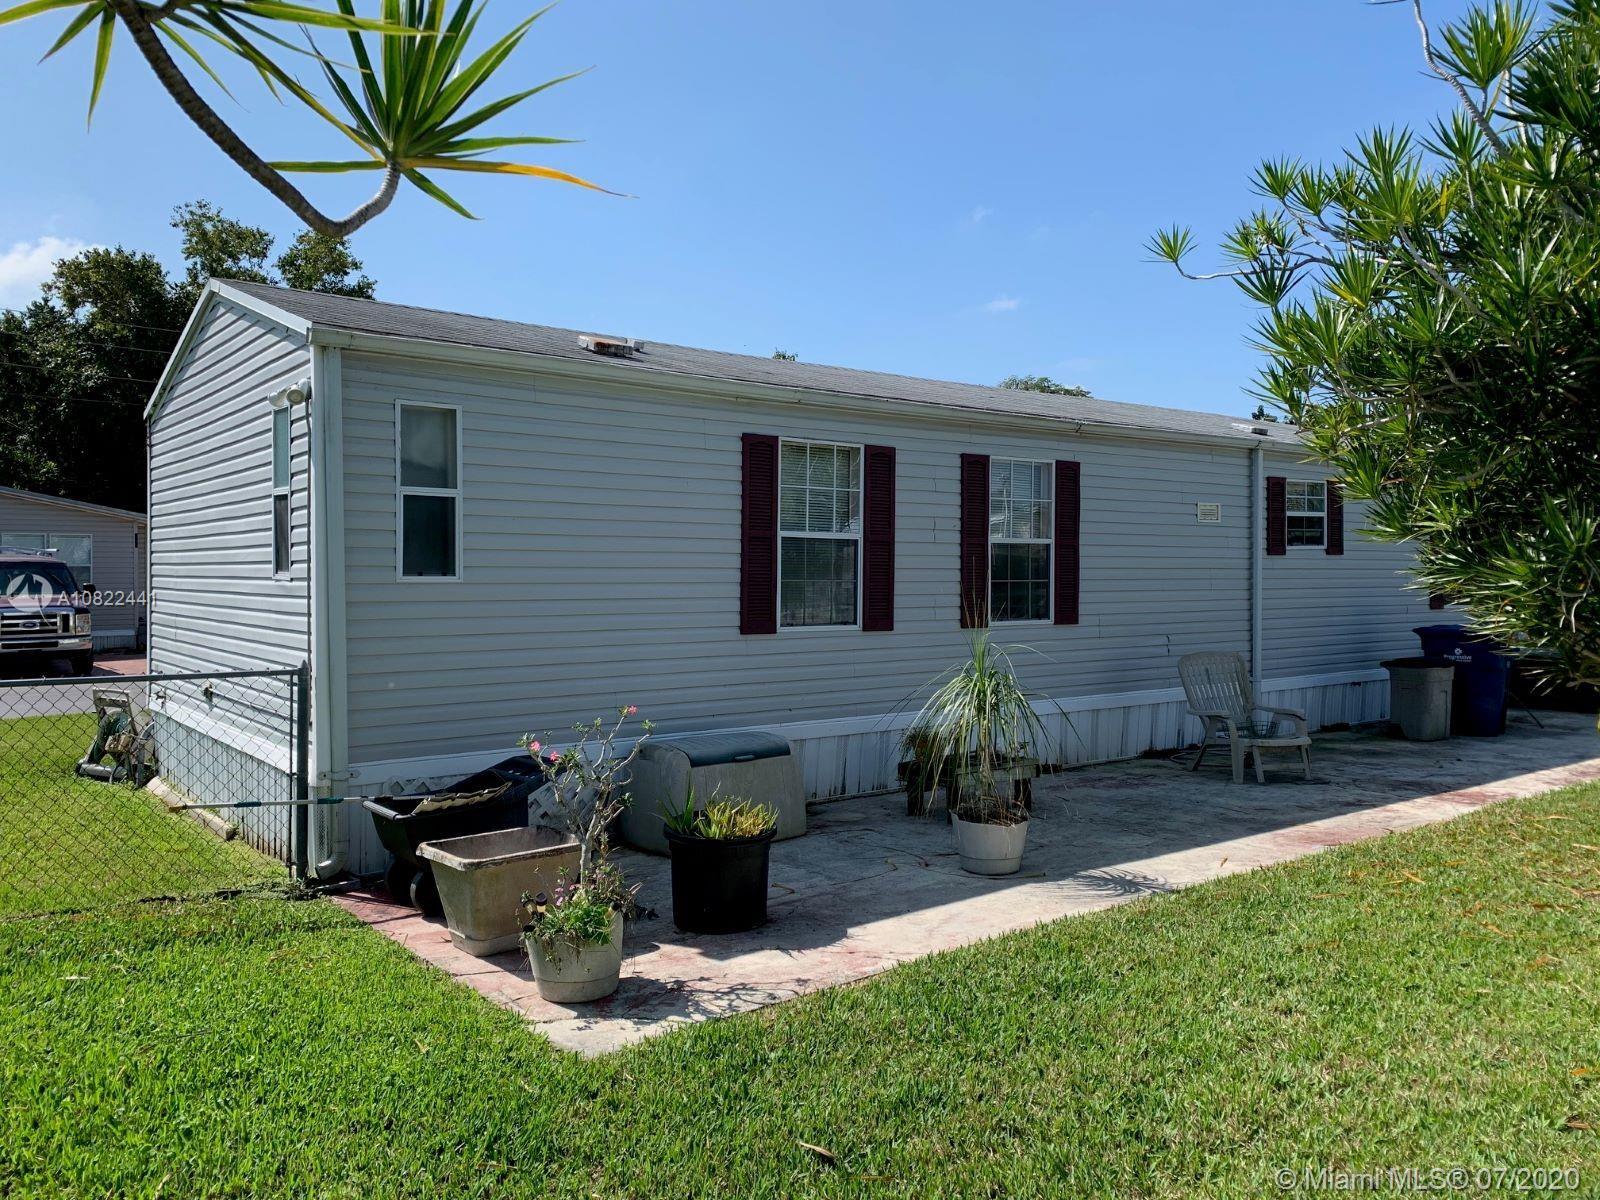 35250 SW 177 CT - UNIT 187, Homestead, FL 33034 - Homestead, FL real estate listing